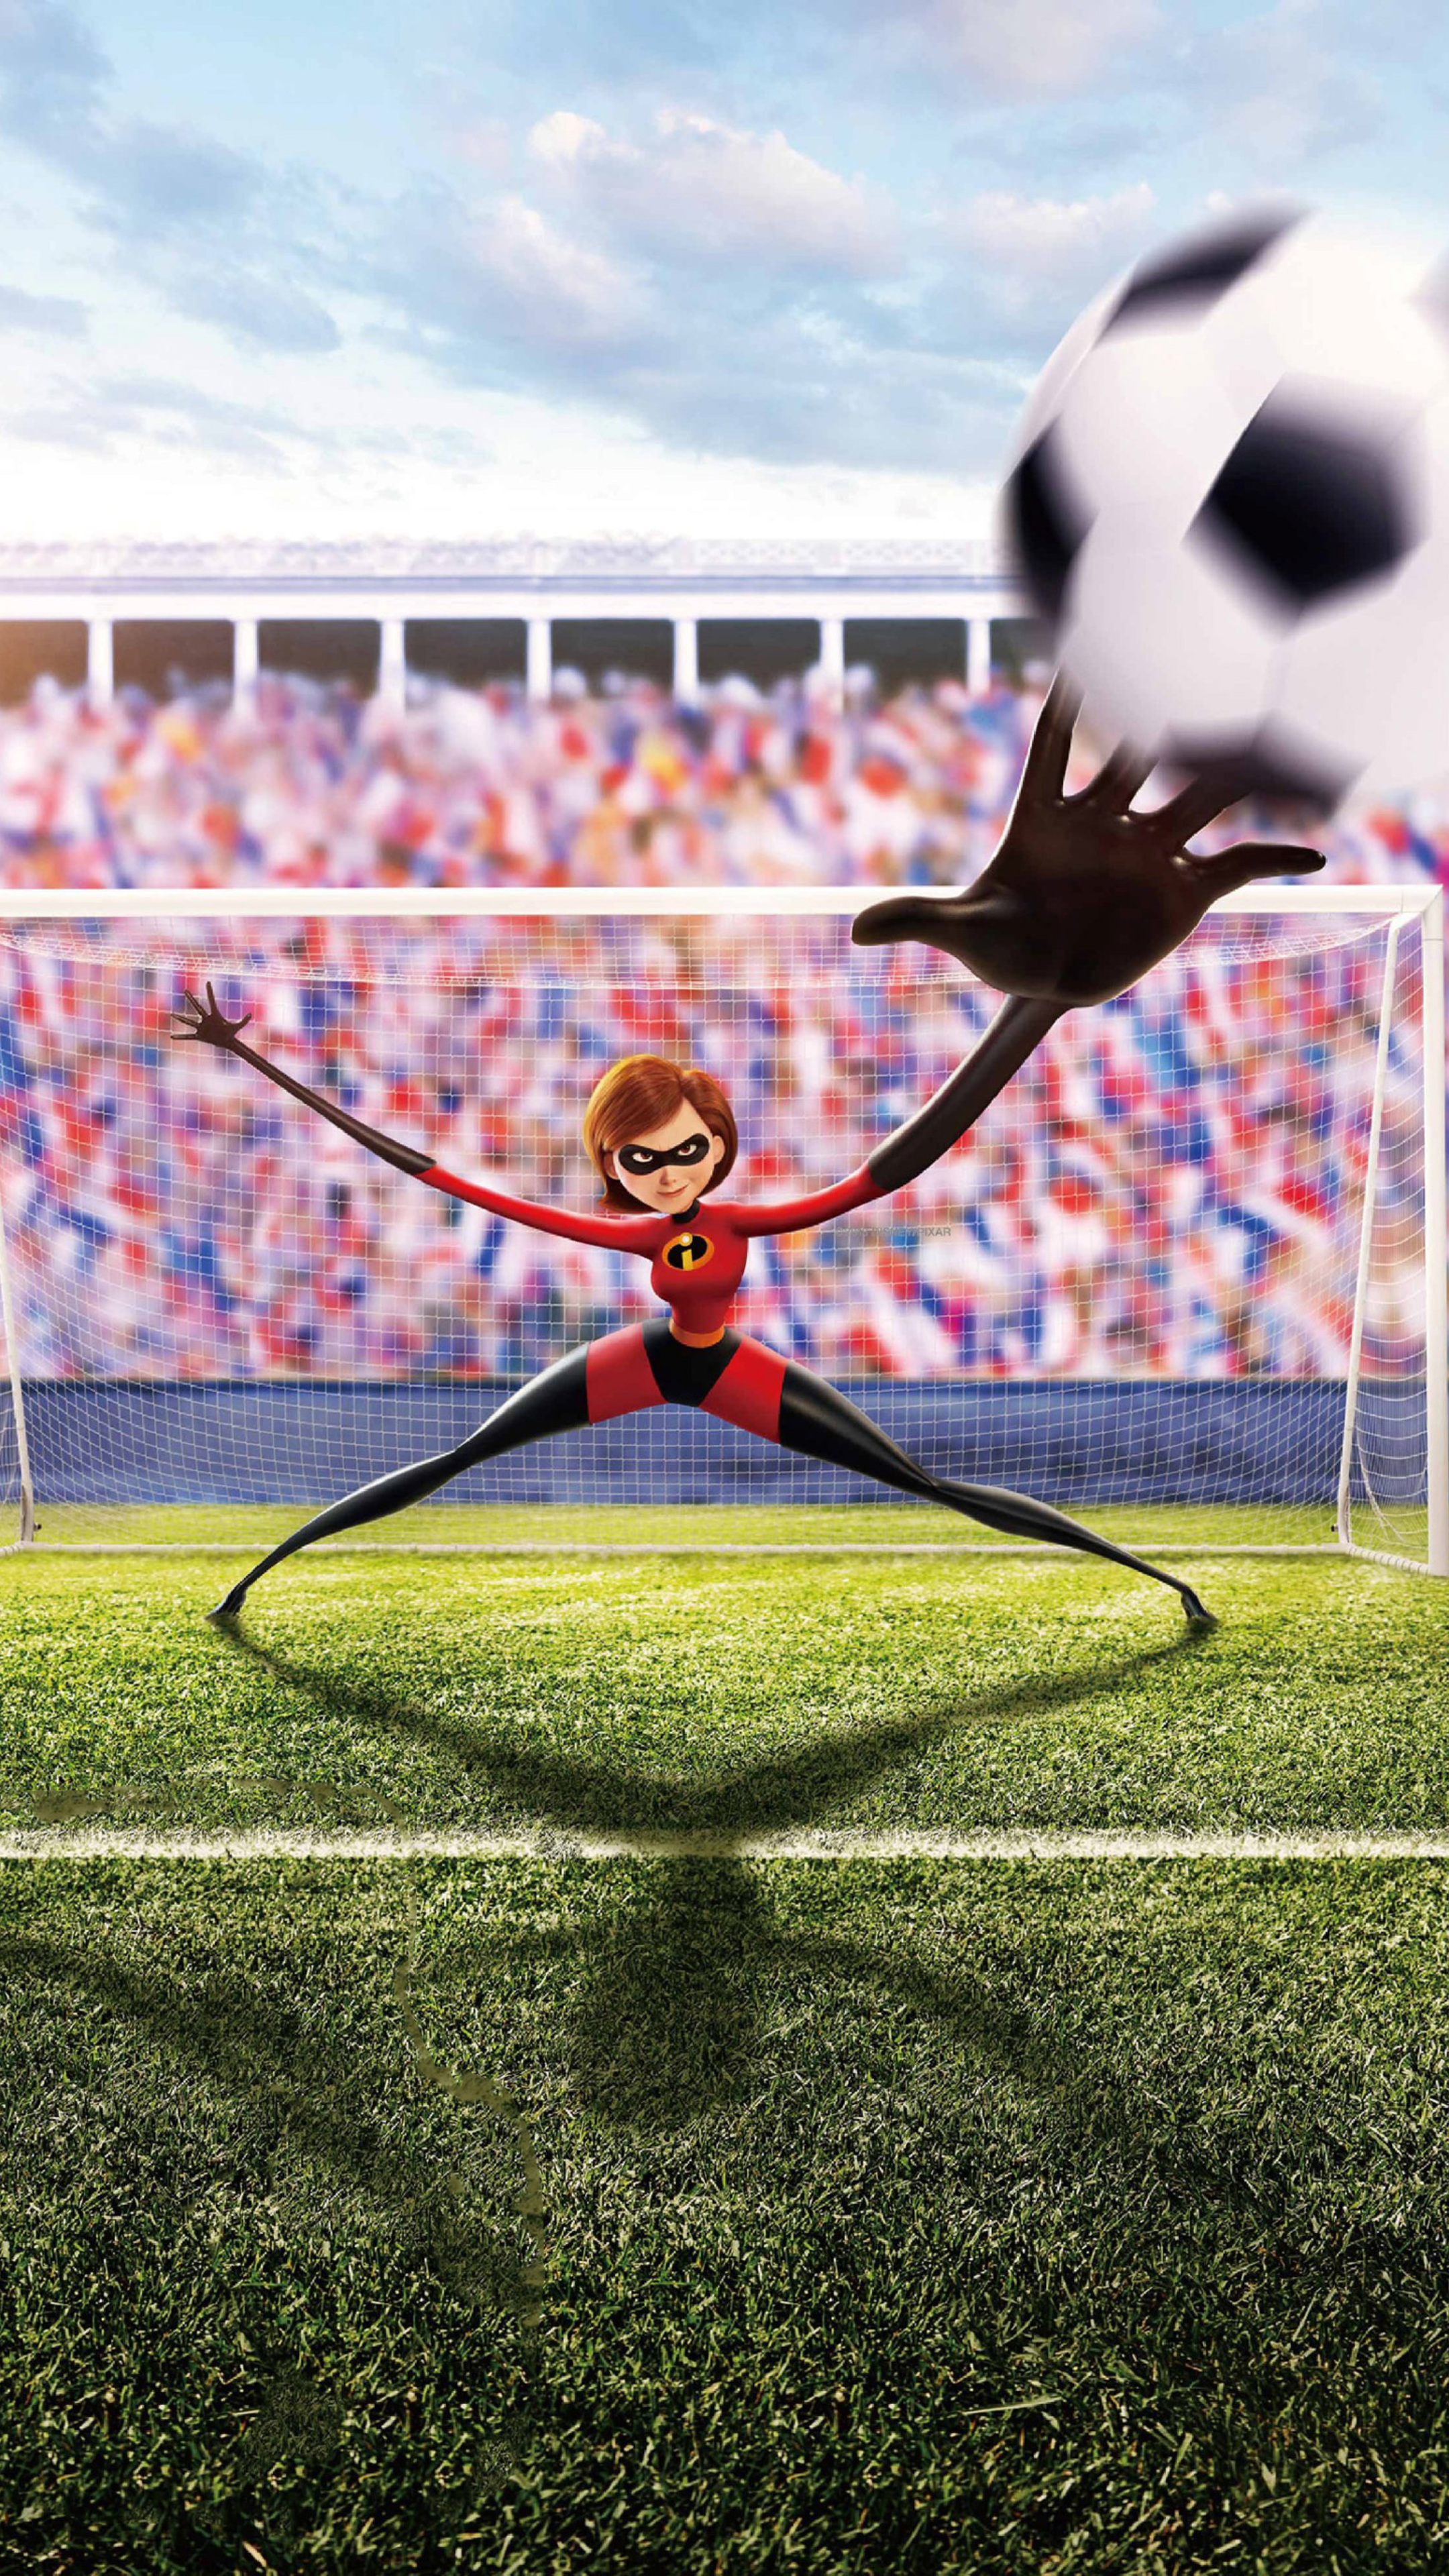 elastigirl-in-the-incredibles-2-fifa-world-cup-russia-w3.jpg